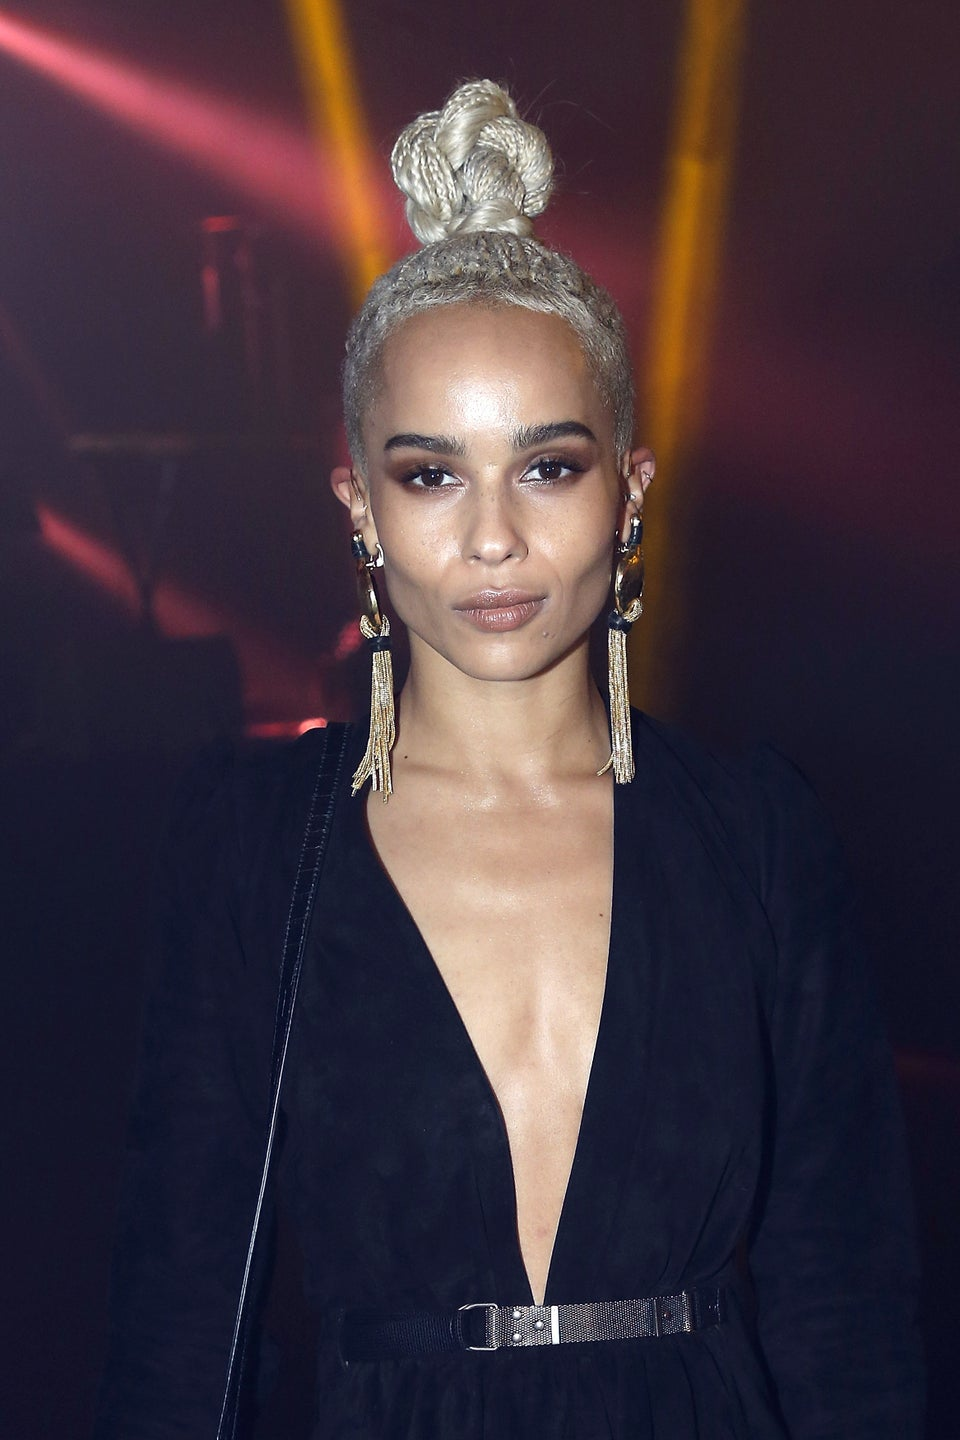 Birthday Beauty: 11 Times Zoe Kravitz's Hairstyles Kept Us On Our Toes